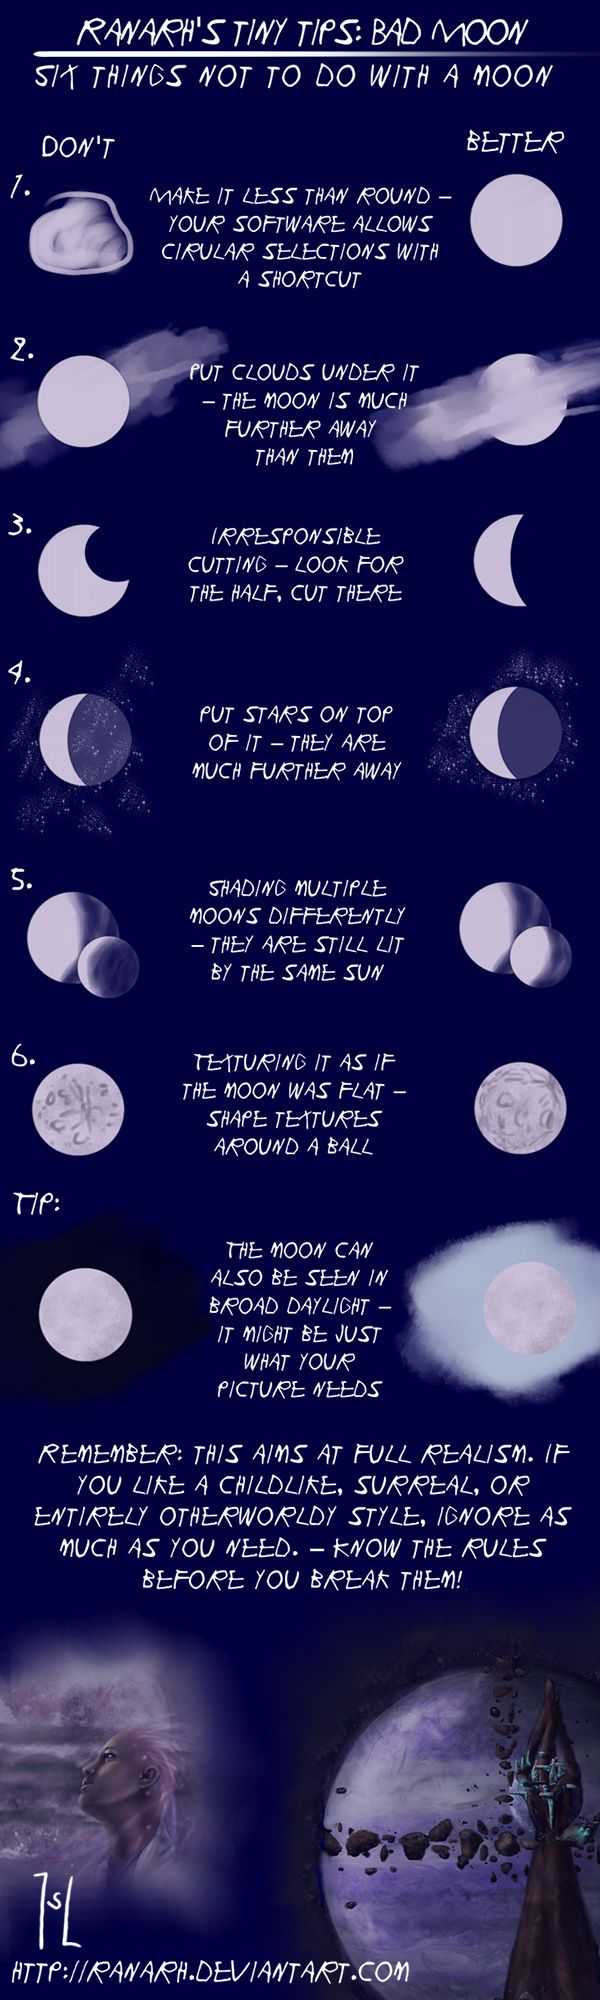 Tiny tips: Bad Moon by Ranarh